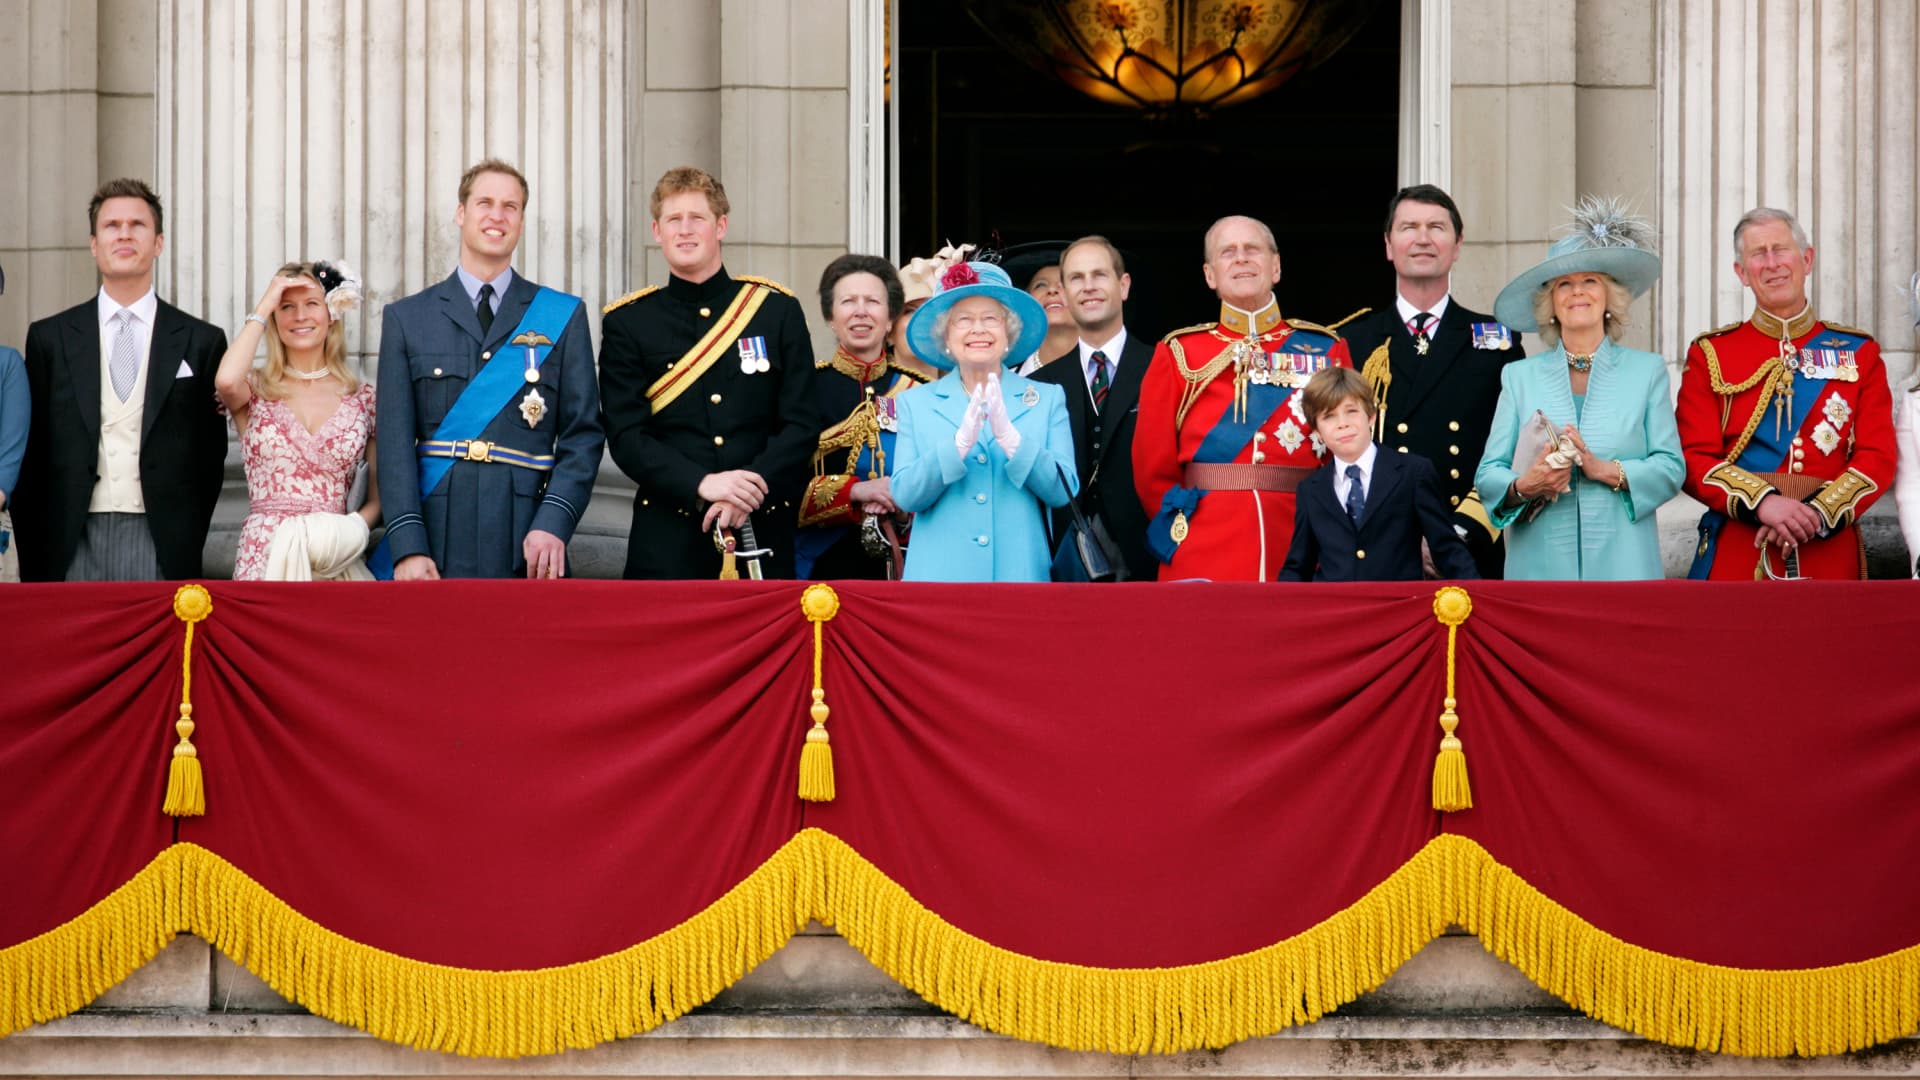 (L-R) George Gilman, Lady Rose Gilman (formerly Lady Rose Windsor), Prince William, Prince Harry, Princess Anne, Queen Elizabeth, Prince Edward, Prince Philip, Charles Armstrong Jones, Adm. Tim Laurence, Camilla and Prince Charles watch the traditional fly-past on the balcony of Buckingham Palace during the annual Queens Colour of First Battalion Grenadier Guards on June 13, 2009, in London, England.